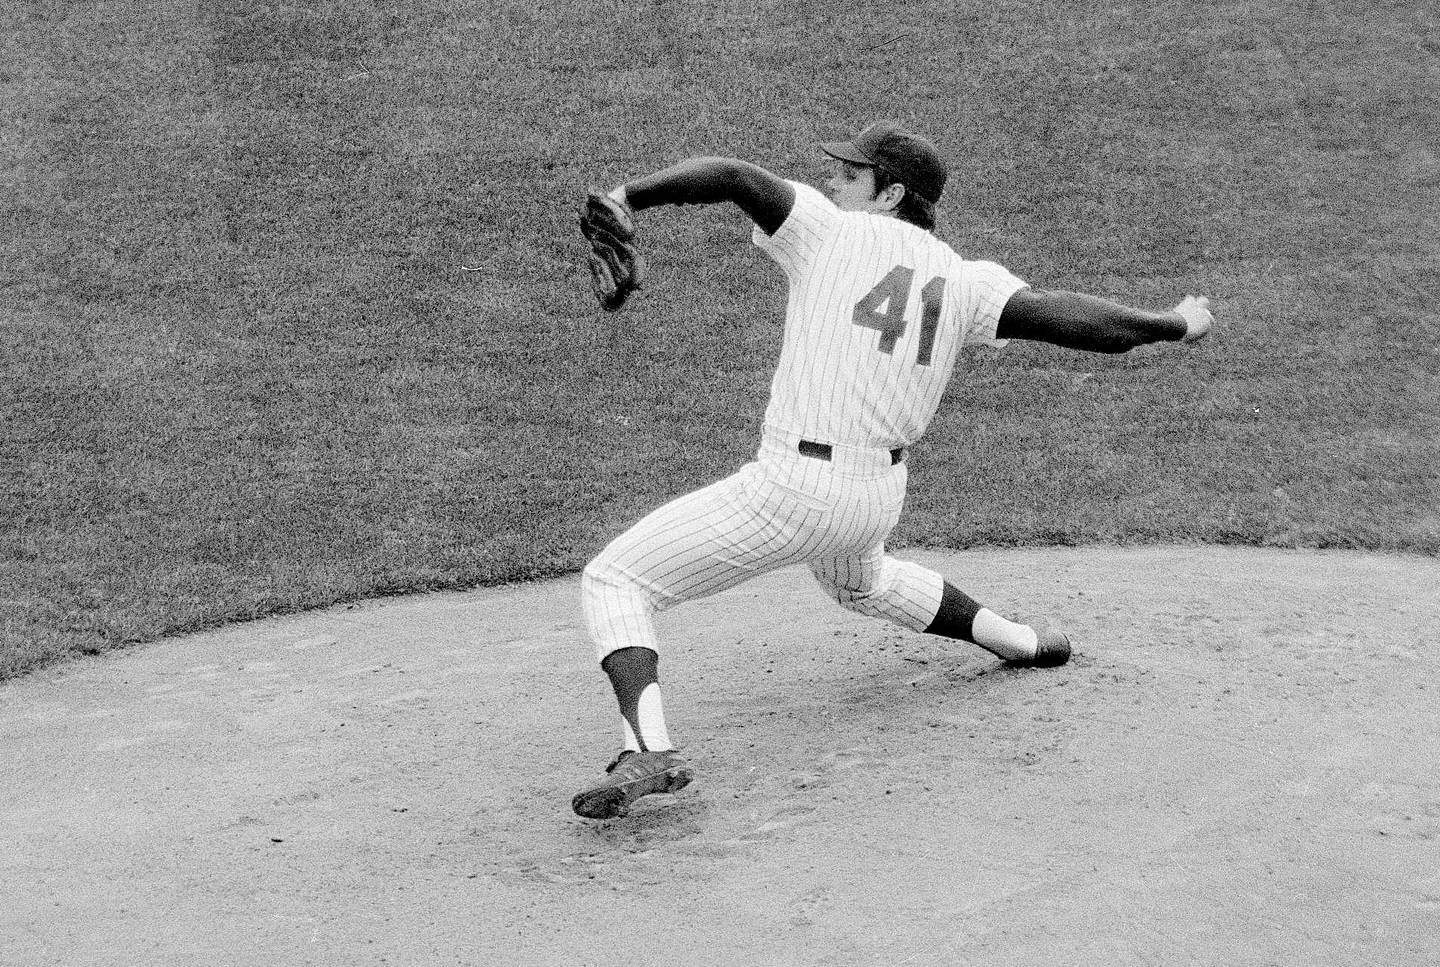 In this April 20, 1967, file photo, New York Mets' Tom Seaver pitches against the Chicago Cubs in a baseball game at Shea Stadium in New York.